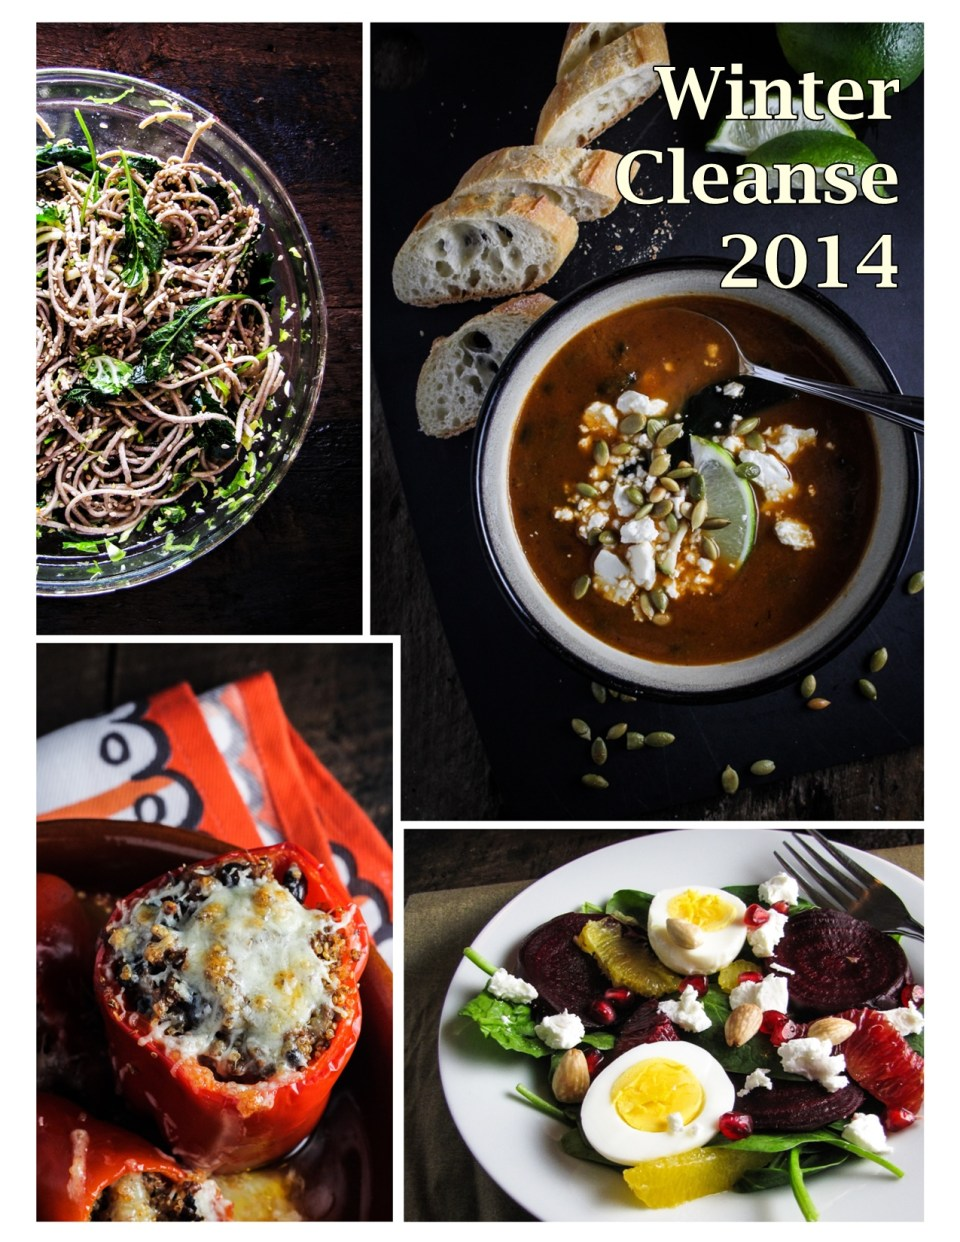 Winter Cleanse 2014 - 14 Healthy, Seasonal, and Delicious Recipes from Katie at the Kitchen Door